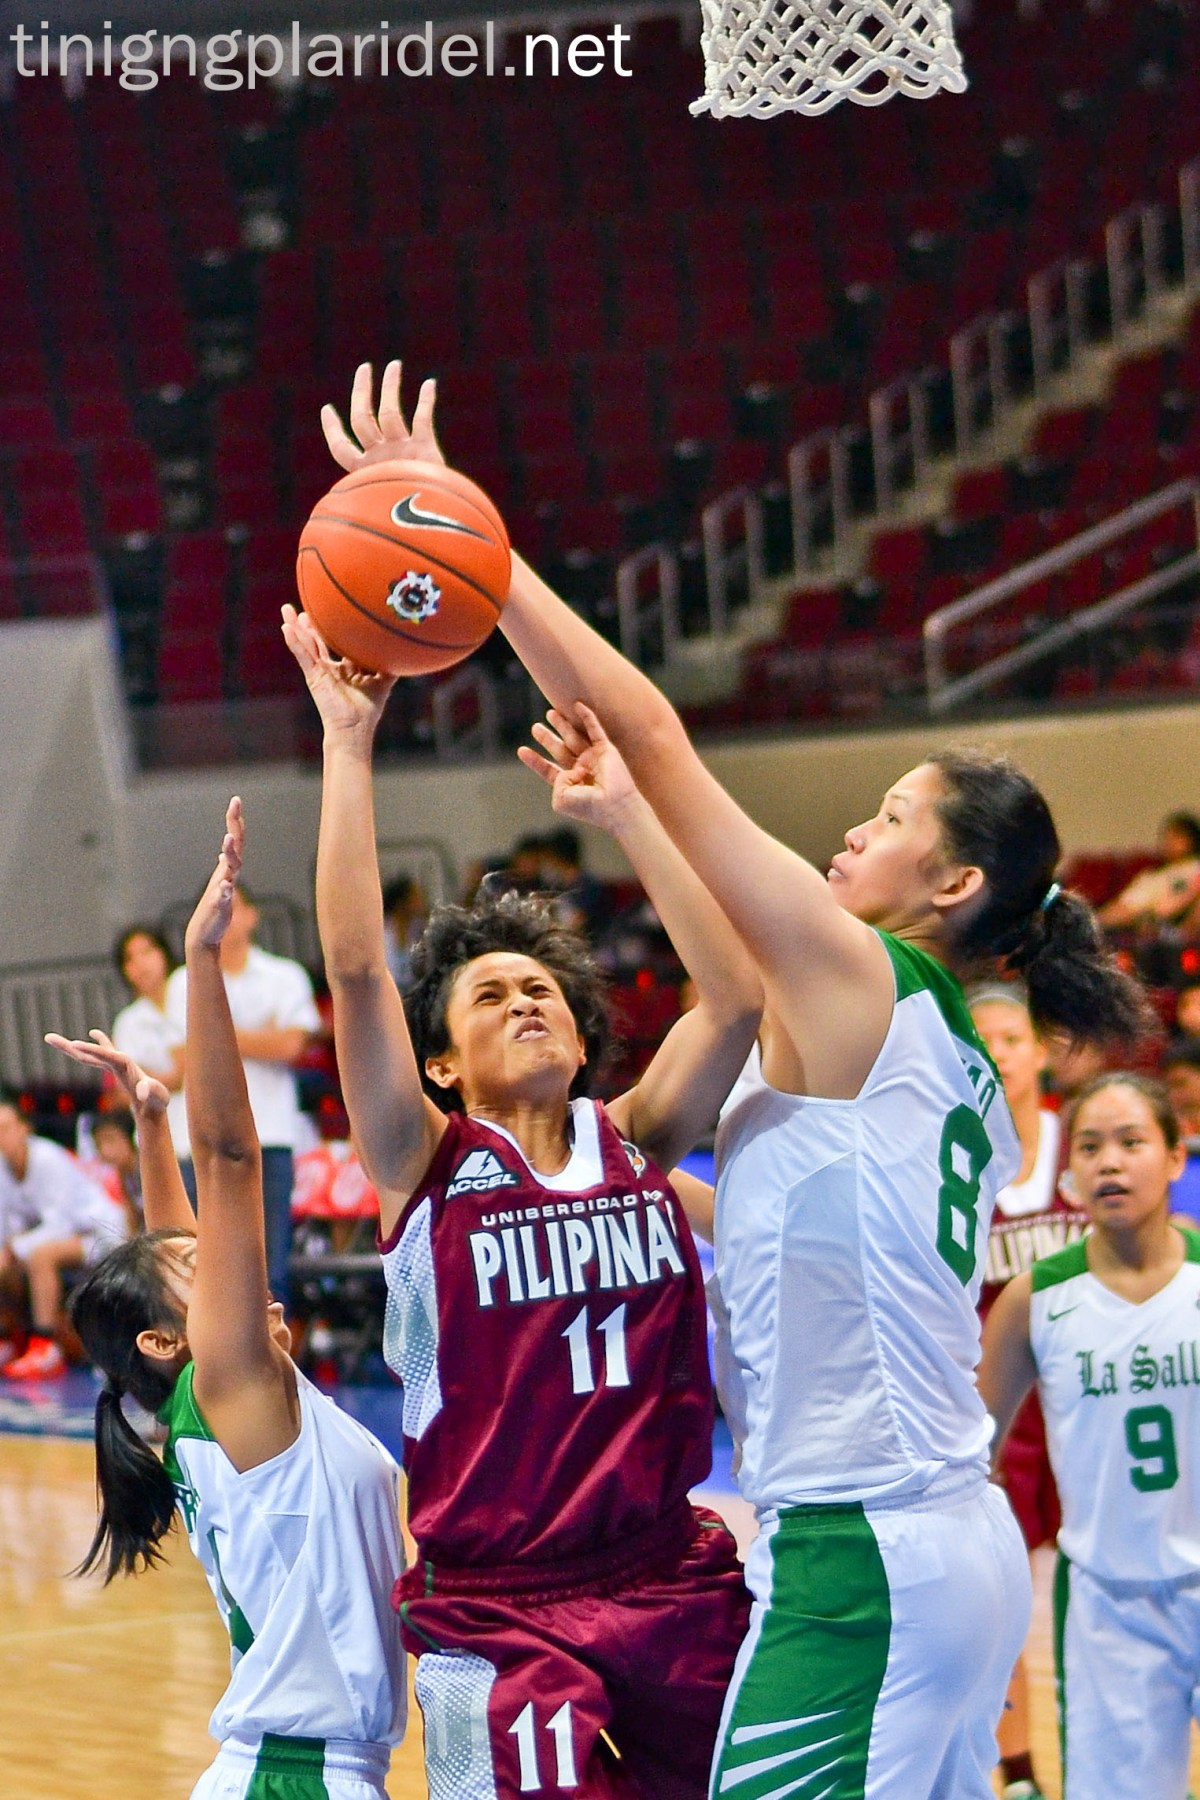 Lady Archers end Maroons' campaign for semis, 71-64